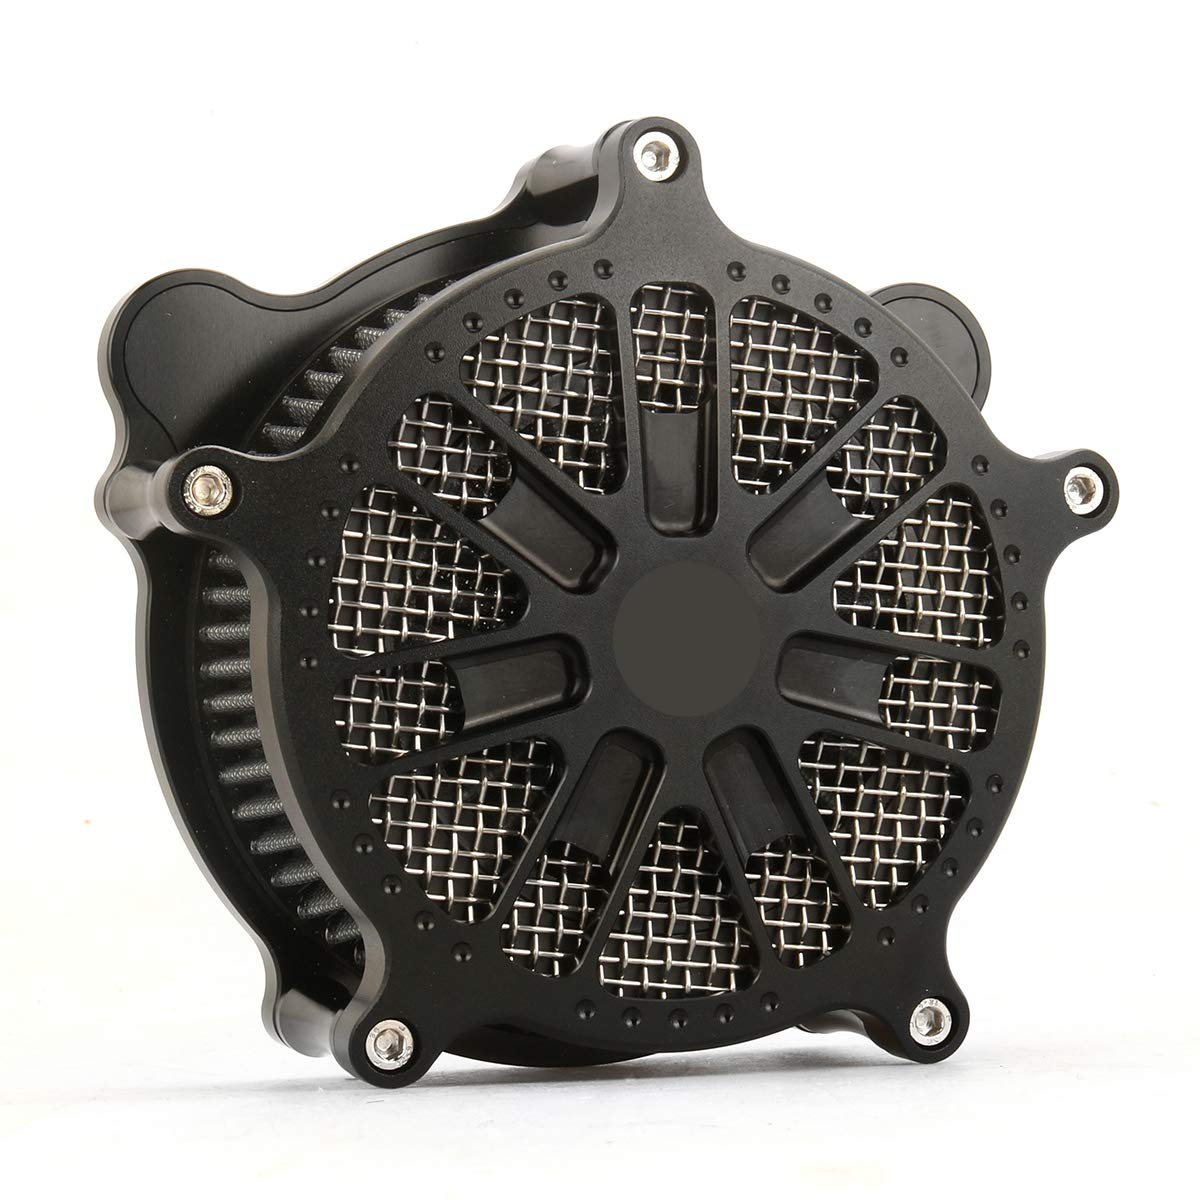 BLACK VENTURI AIR CLEANER INTAKE COVER for harley sportster XL 1991-2019 air filters sportster 883 1200   B07M9RNJW7